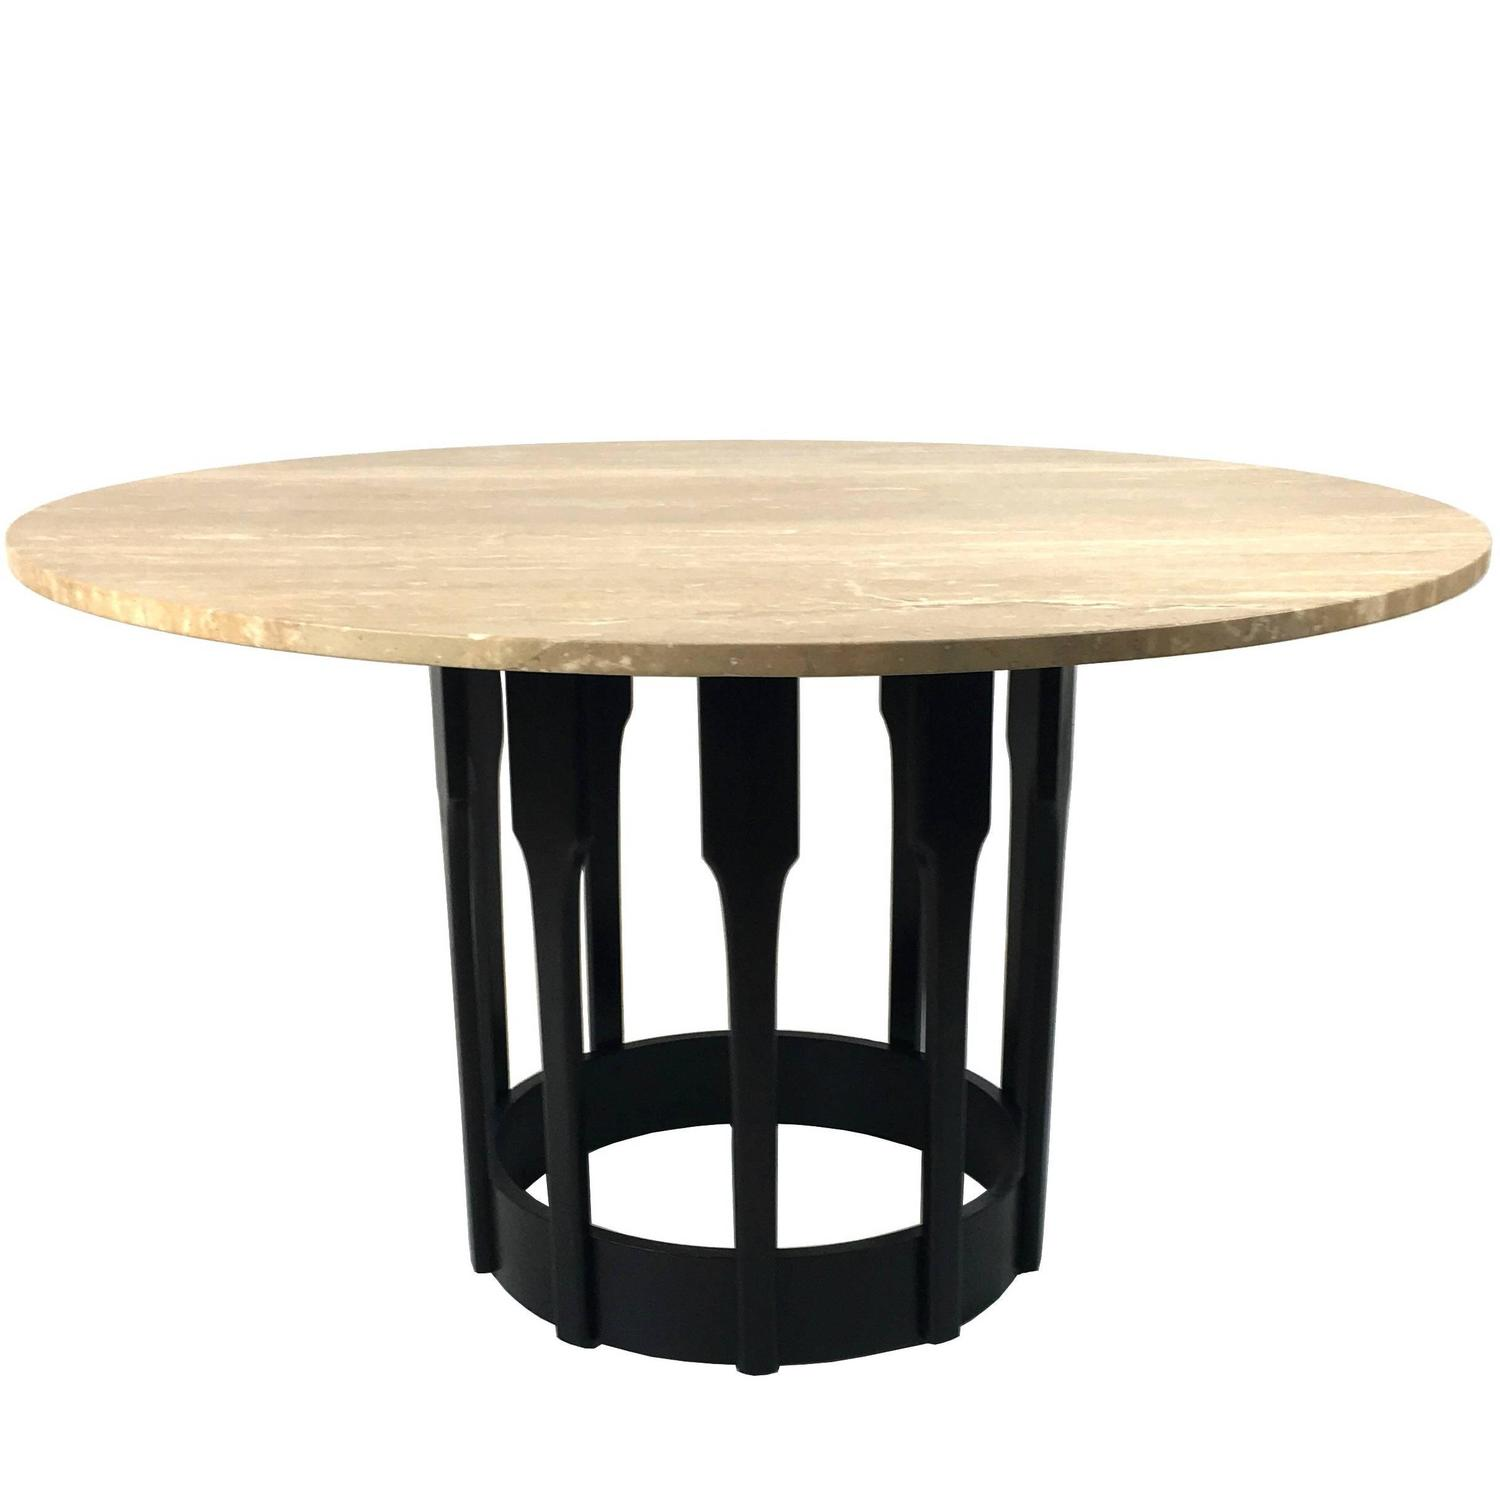 Michael taylor cyprus tree trunk dining table at 1stdibs - Michael Taylor Cyprus Tree Trunk Dining Table At 1stdibs 41